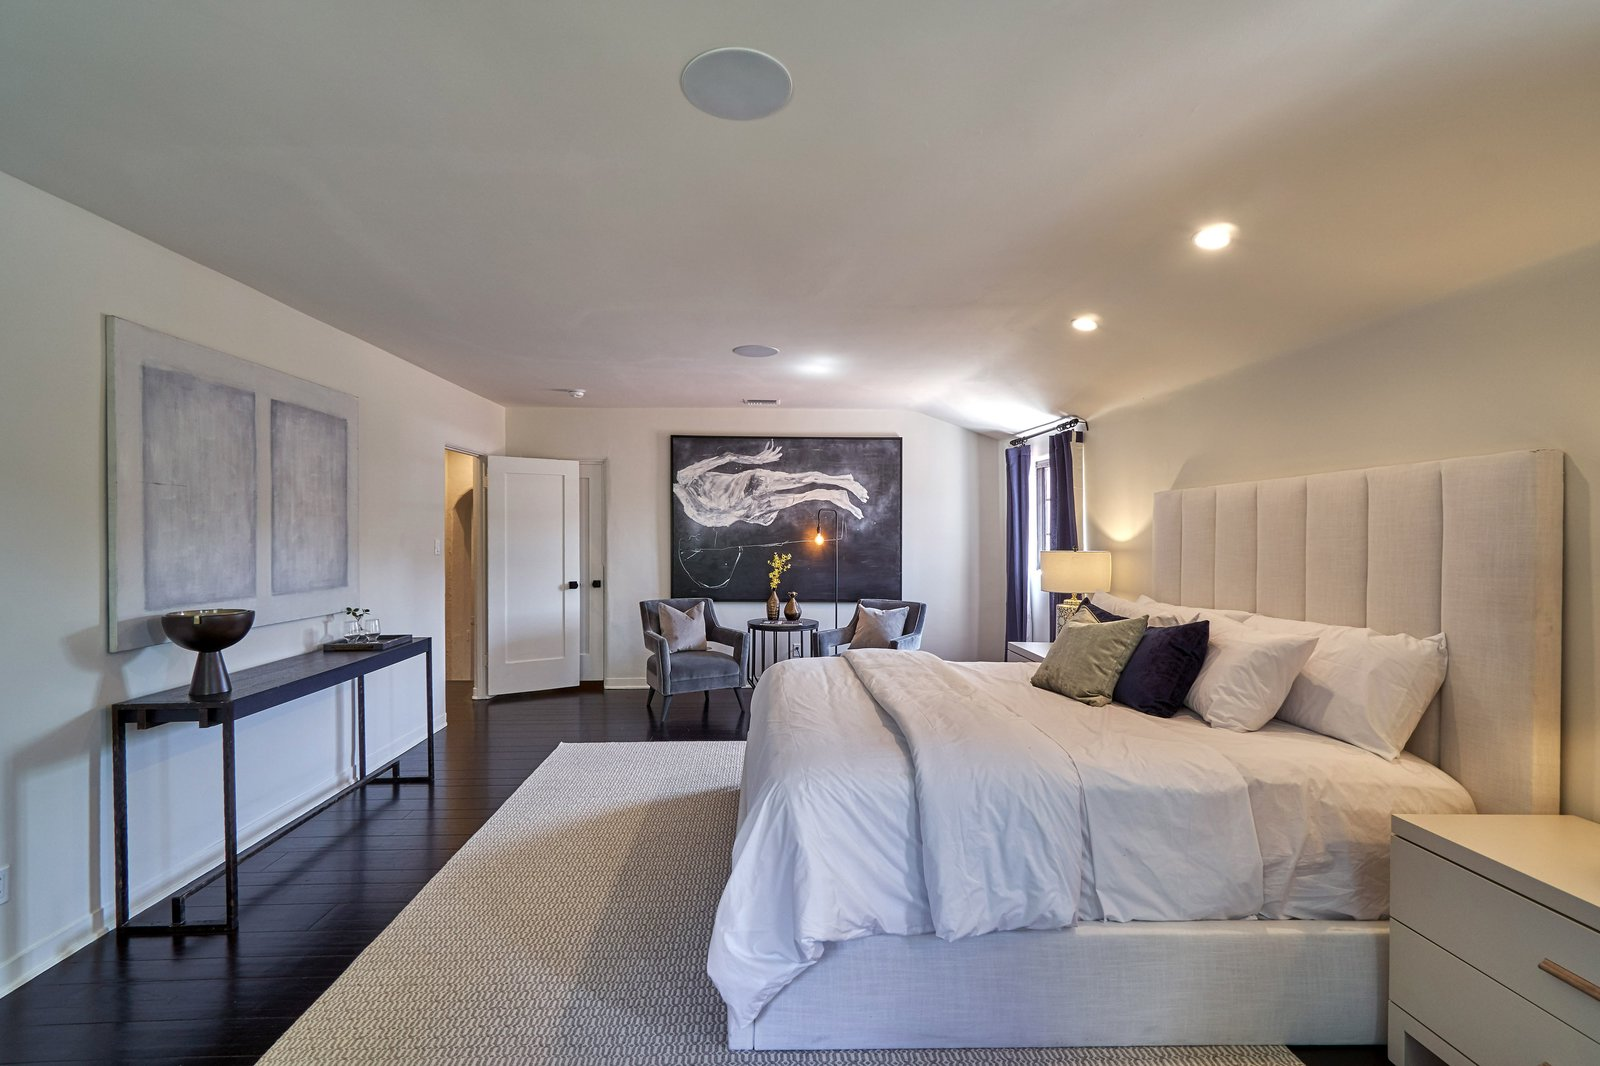 Bedroom, Dark Hardwood, Bed, Chair, Night Stands, Recessed, Dresser, Ceiling, and Rug The master suite boasts dual walk-in closets and an elegant ensuite bathroom.  Best Bedroom Bed Night Stands Dresser Ceiling Recessed Photos from Snatch Up James Dean's Former Hollywood Home For $4M